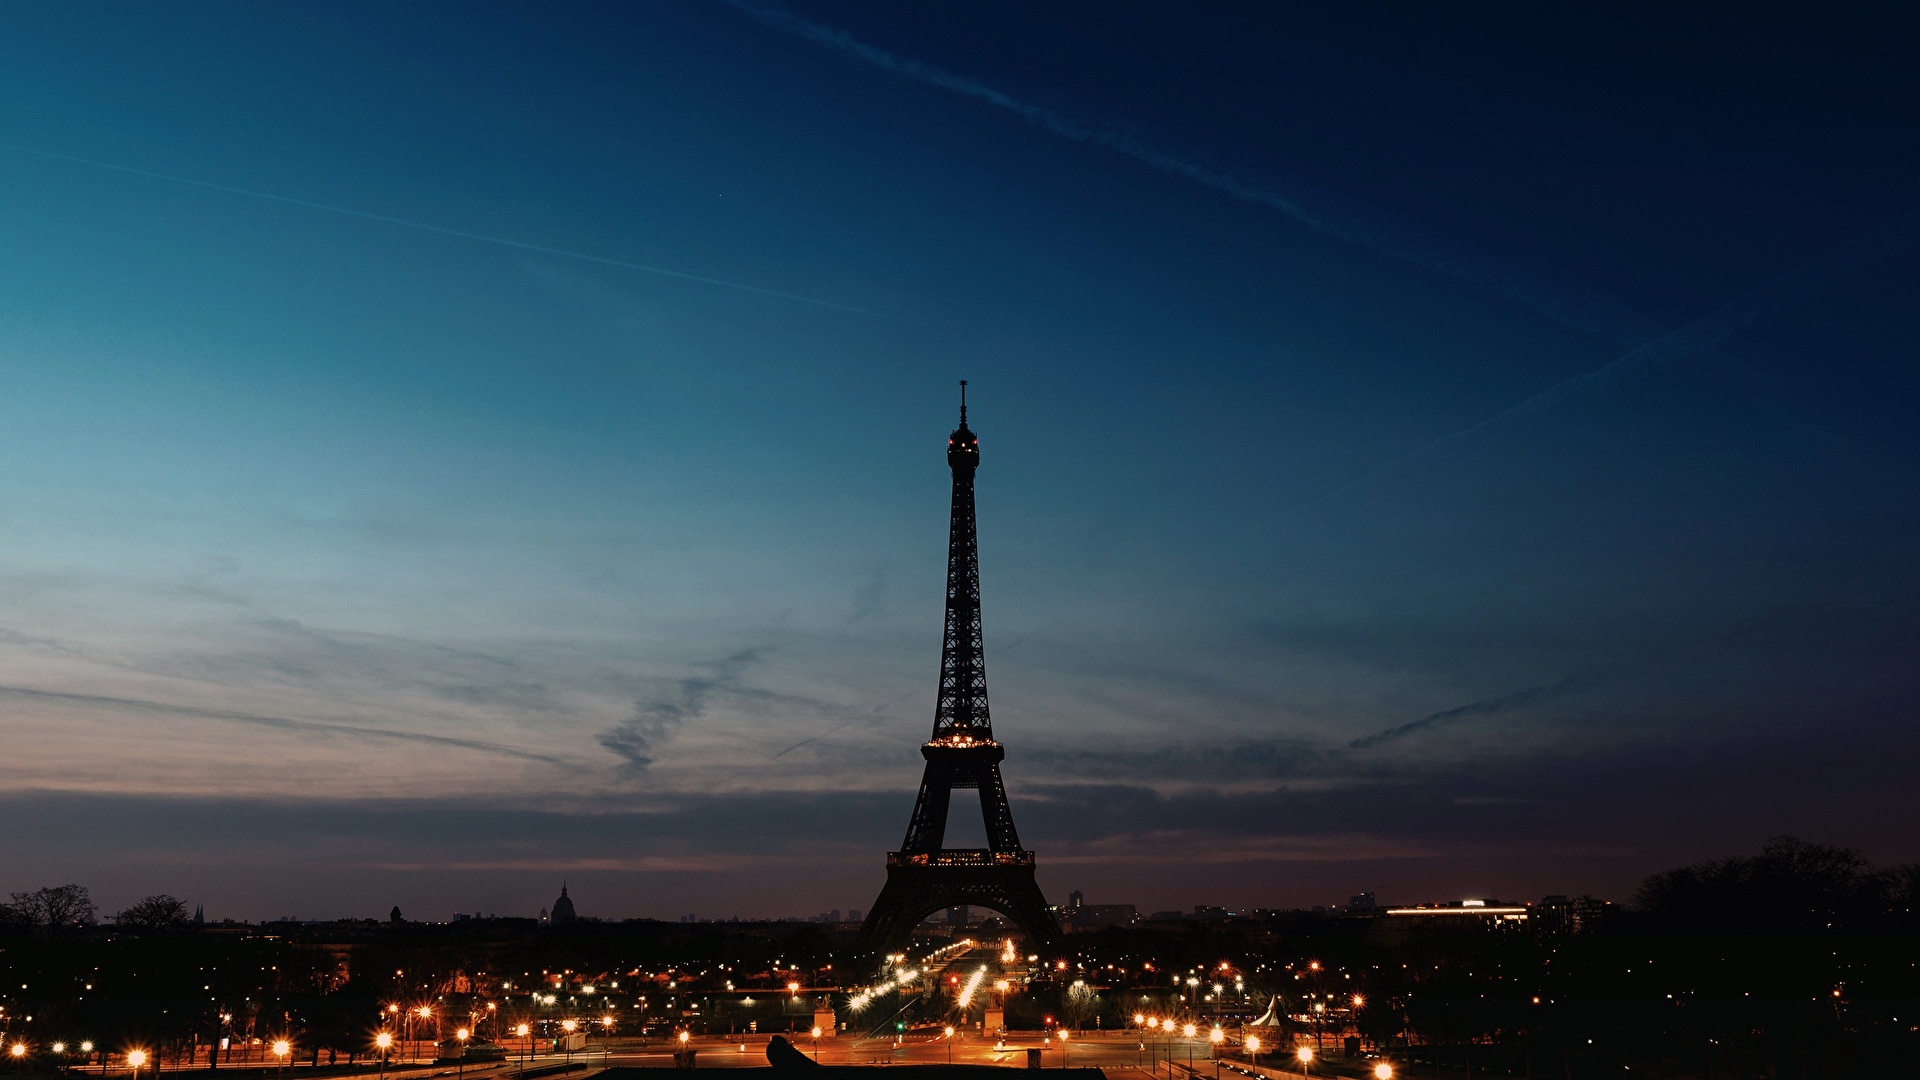 Images Paris Eiffel Tower France Silhouettes Sky Night 1920x1080